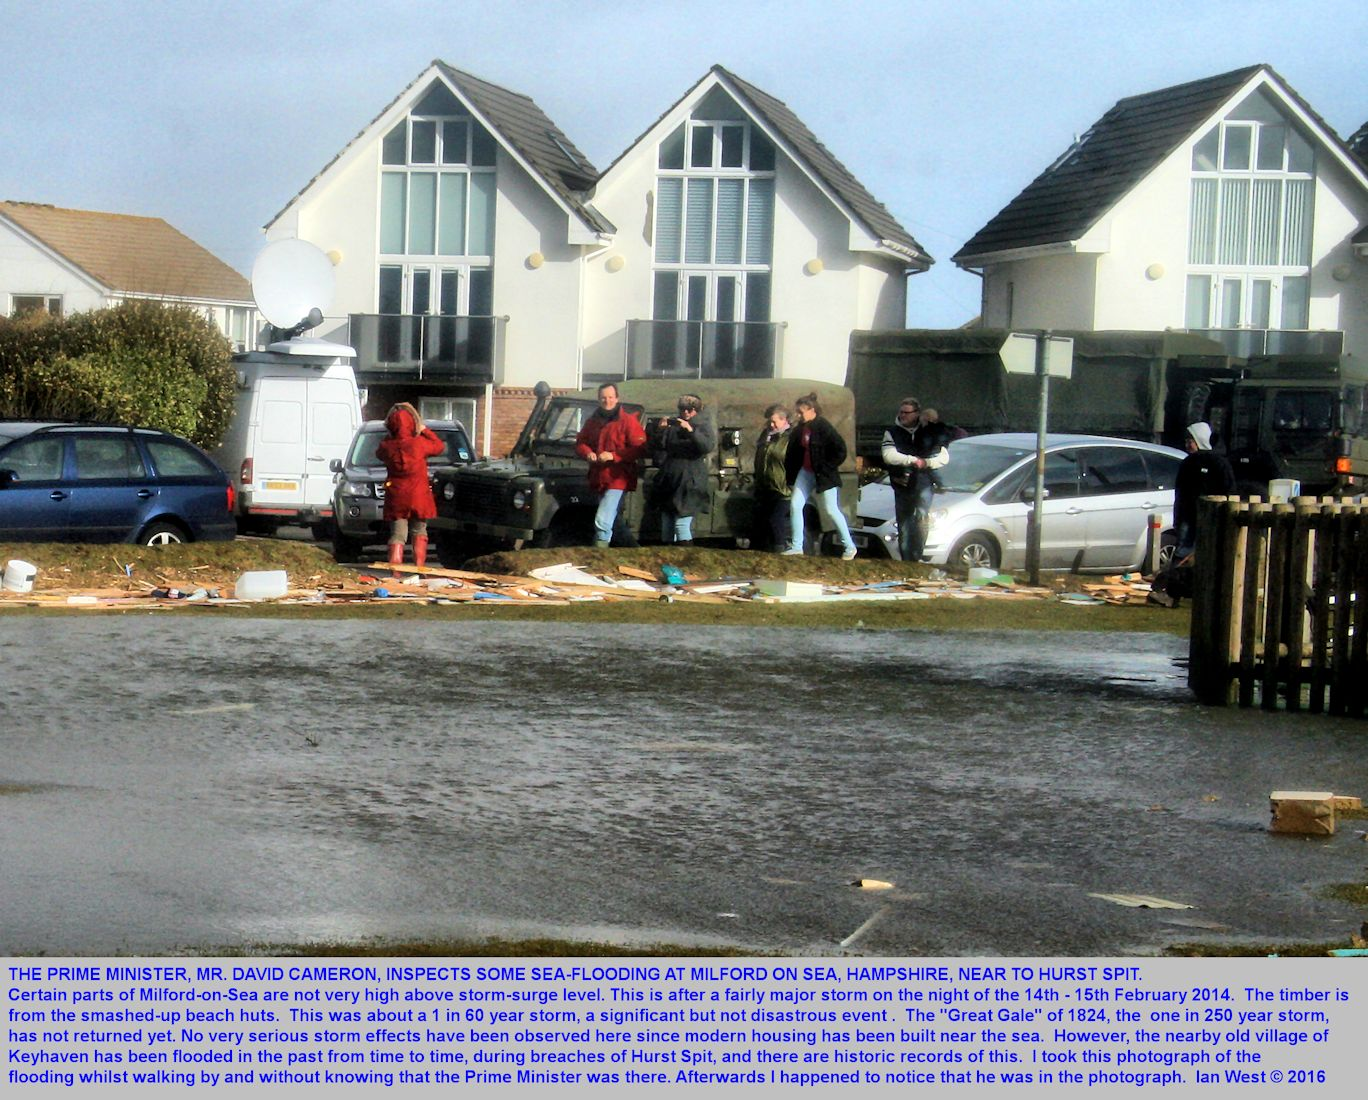 The Prime Minister, David Cameron, visits Milford-on-Sea, near Hurst Spit, Hampshire, to see the effects of  some sea flooding as result of a bad storm, overnight, 14th-15th February 2014